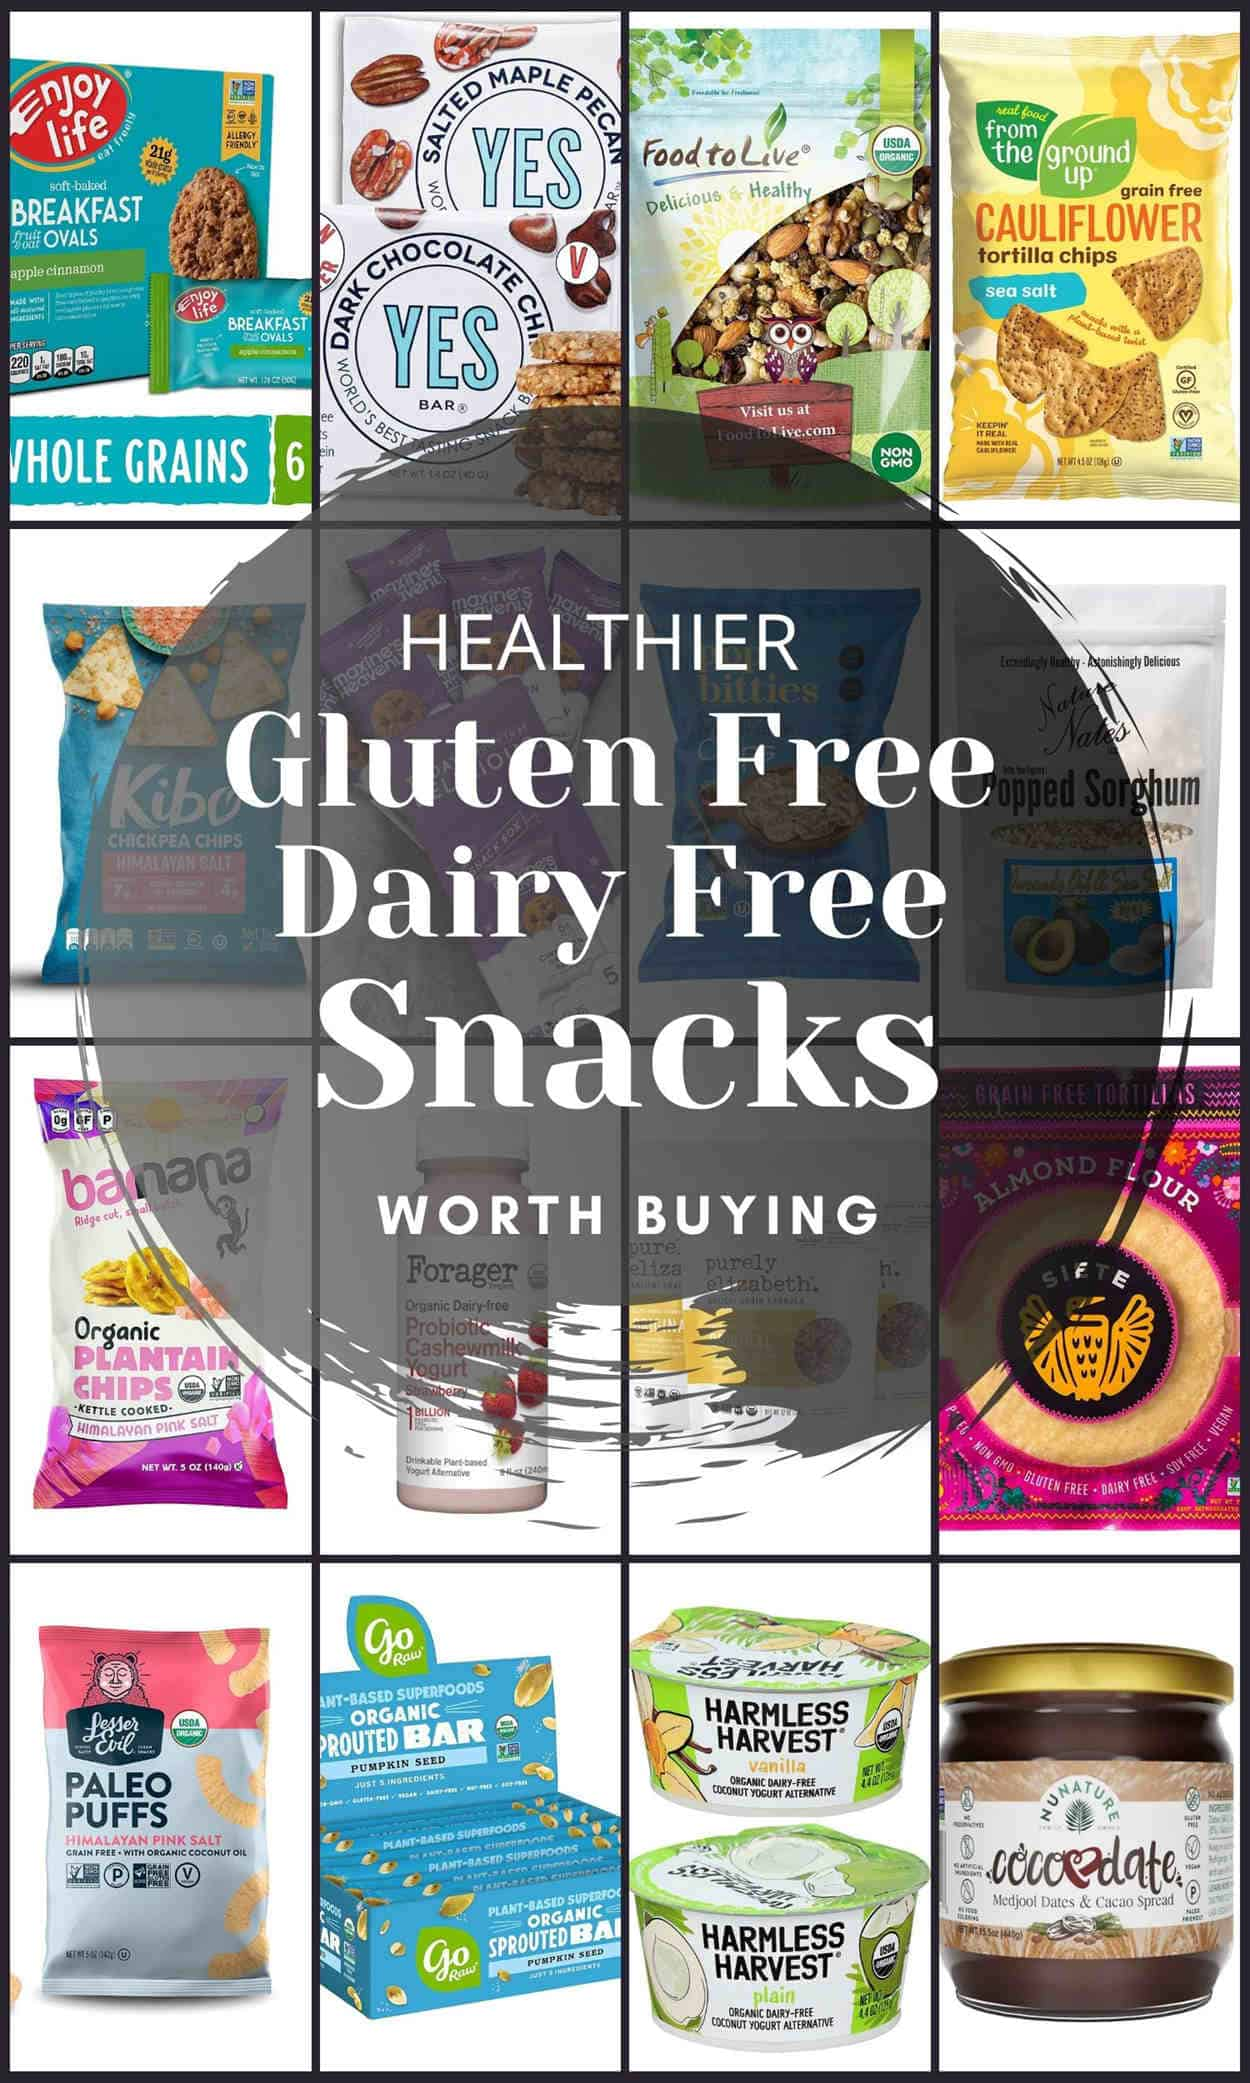 Gluten Free Dairy Free Snacks Worth Buying Plus Tips And Recipes.